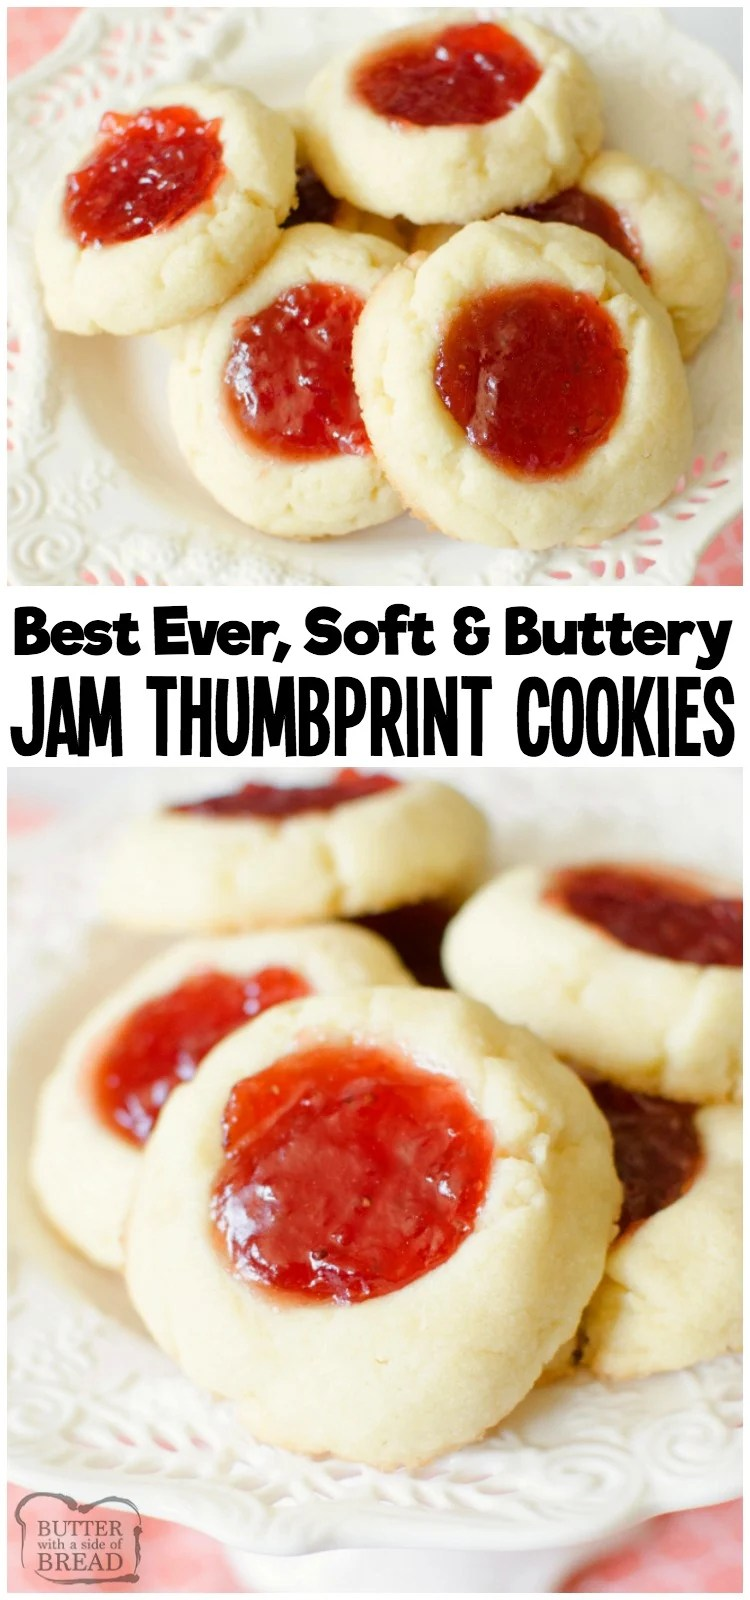 Easy recipe for Soft Jam Thumbprint Cookies perfect for the holidays! Buttery cookies with great flavor, filled with your favorite sweet jam. Perfect for Christmas cookie exchanges! #cookies #recipe #baking #dessert #thumbprints #cookie #jam #Christmas from BUTTER WITH A SIDE OF BREAD